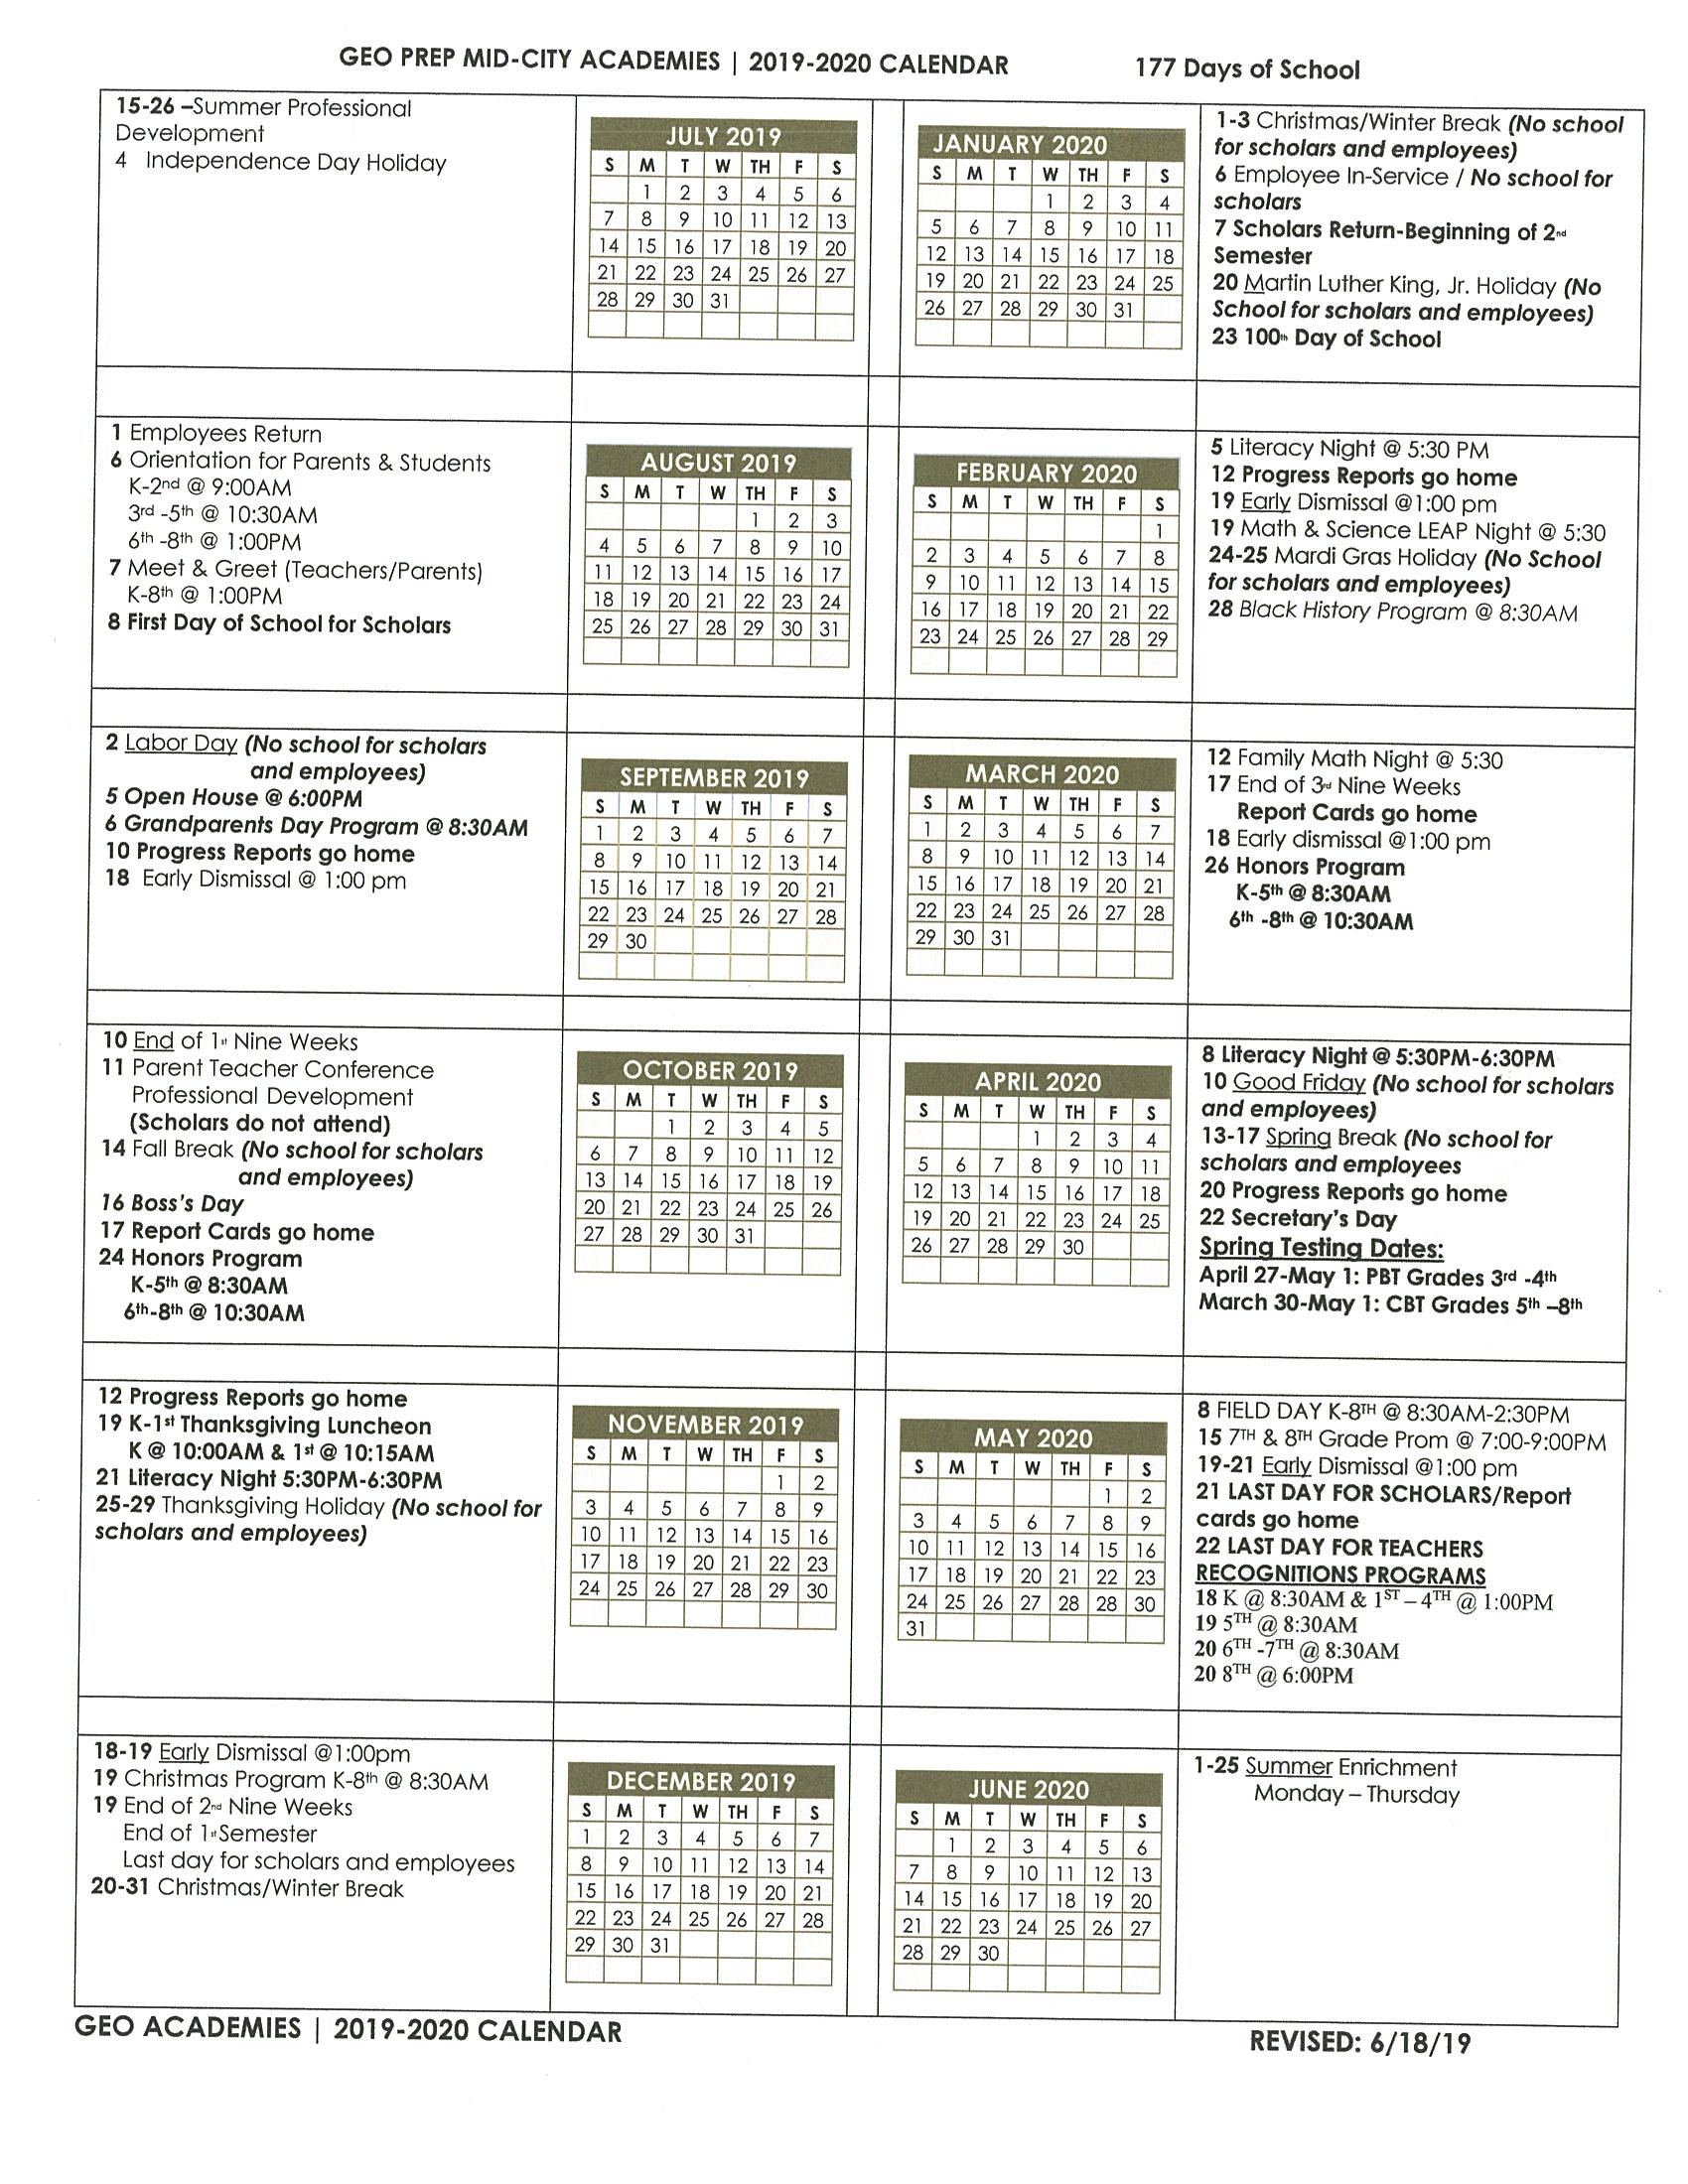 School Calendar – Geo Prep Mid City